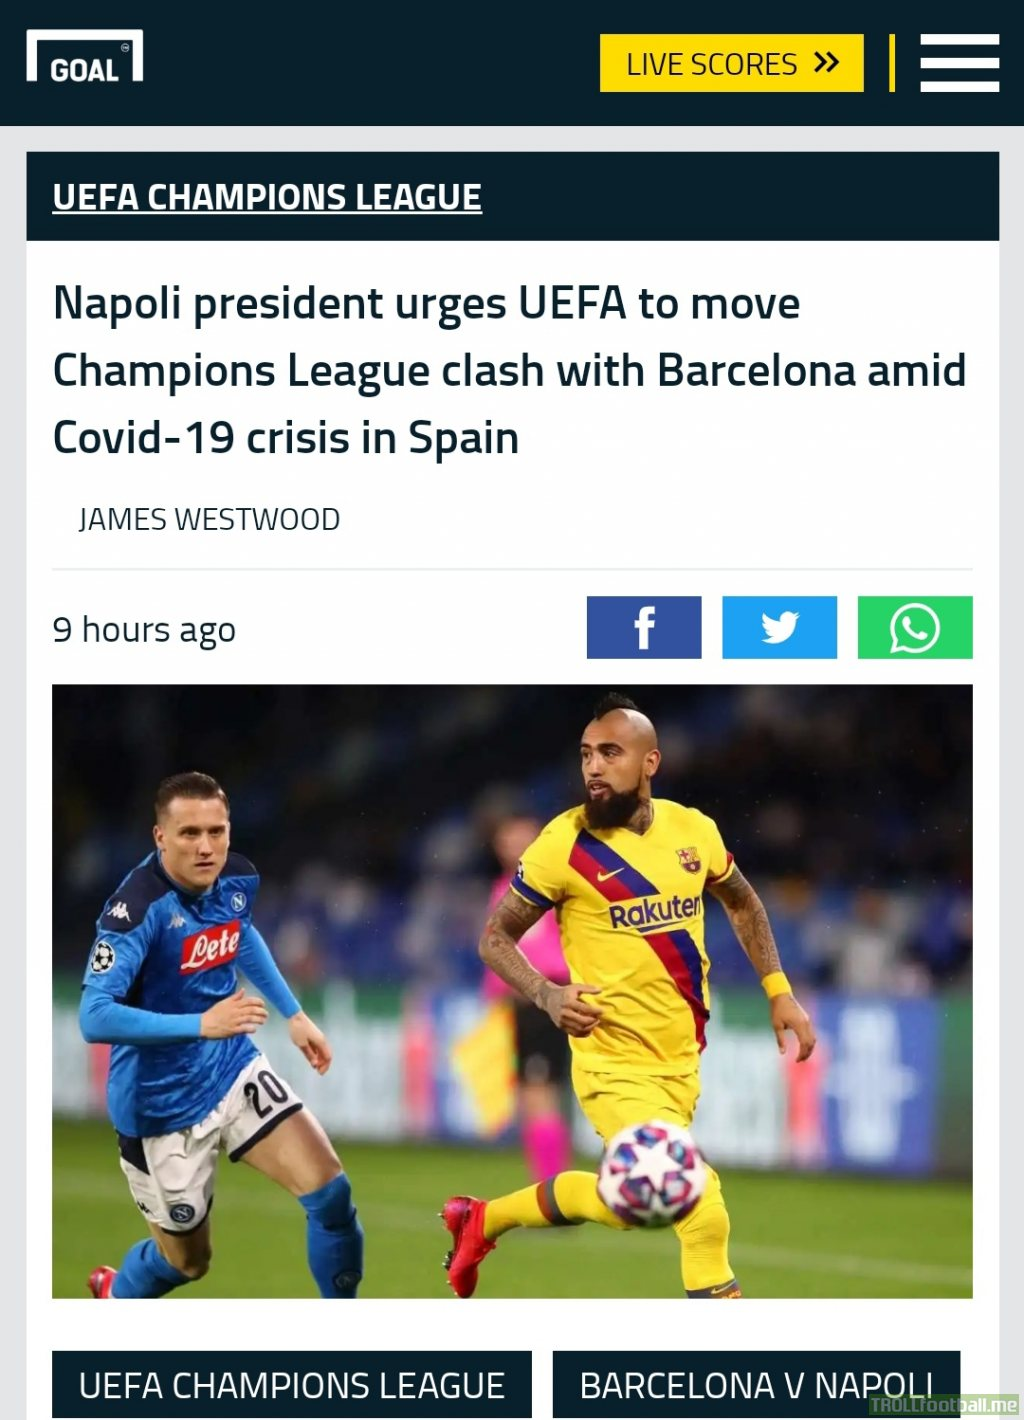 Napoli president urges UEFA to move Champions Leuage clash with Barcelona amid Covid-19 crisis in Spain. What are your thoughts. Should they move the location or leave it as it is